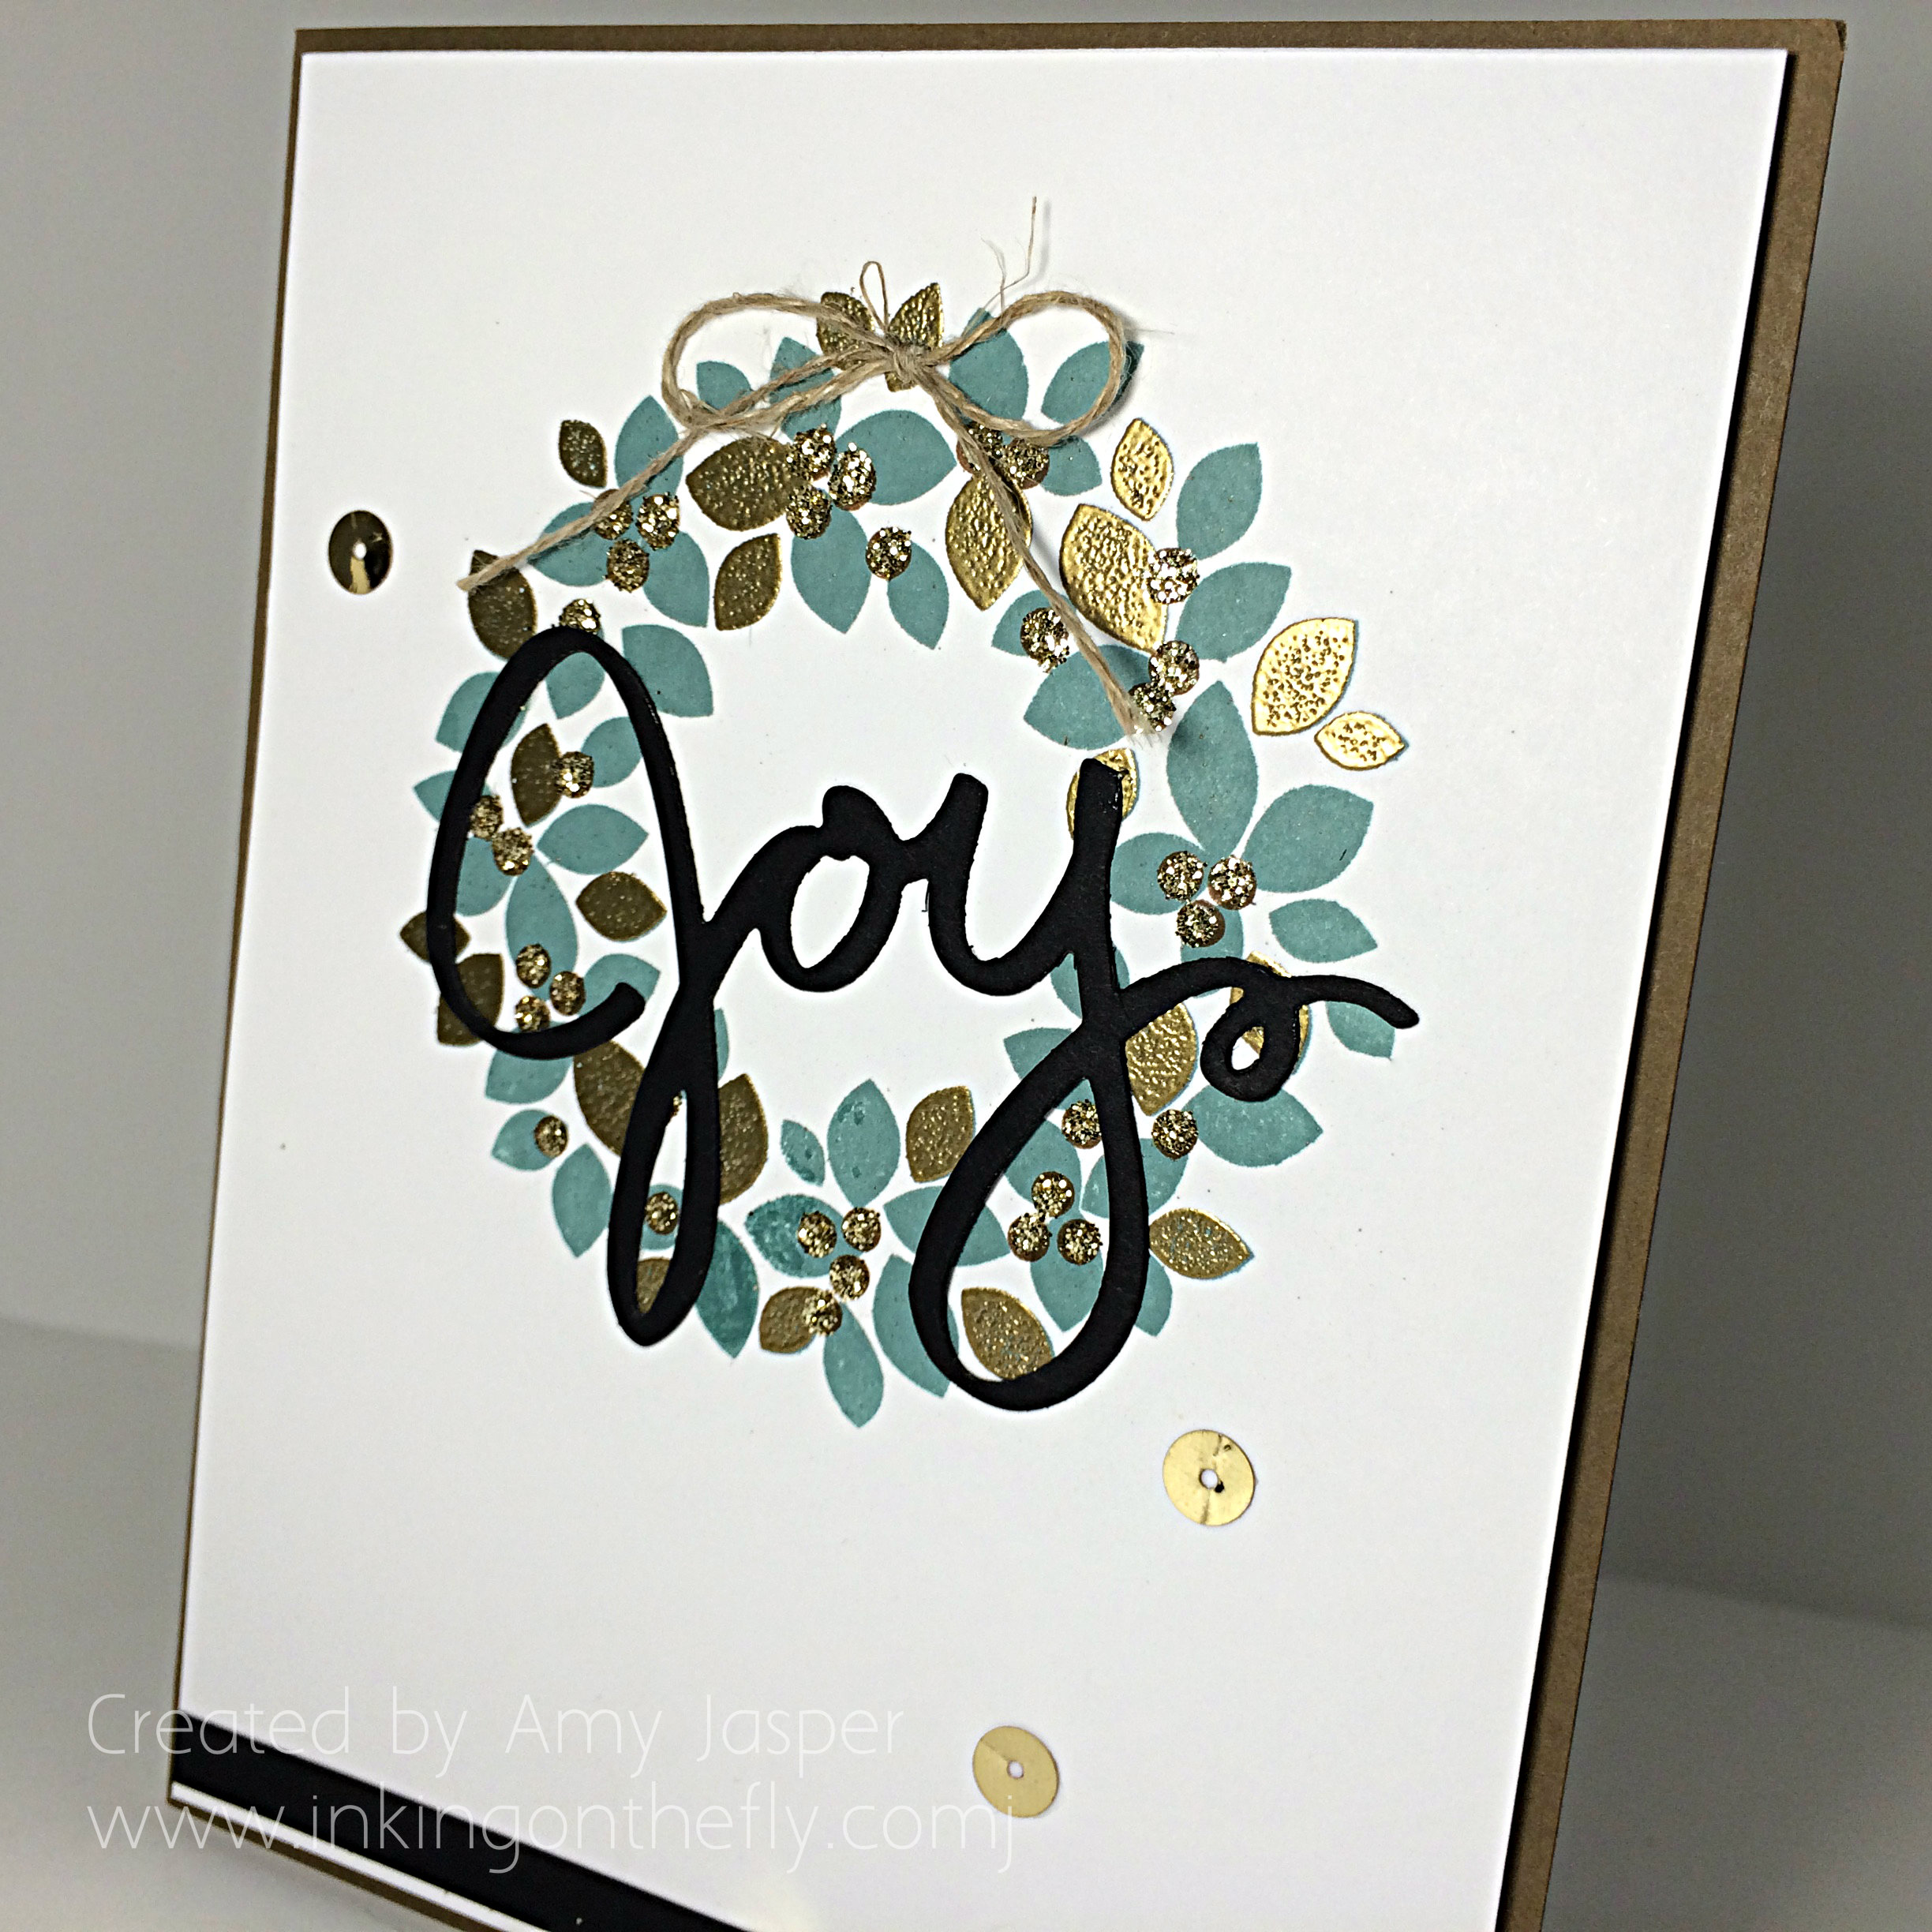 Joy card by Amy Jasper www.inkingonthefly.com - Wonderous Wreath stamp set and framelits from Stampin' Up!